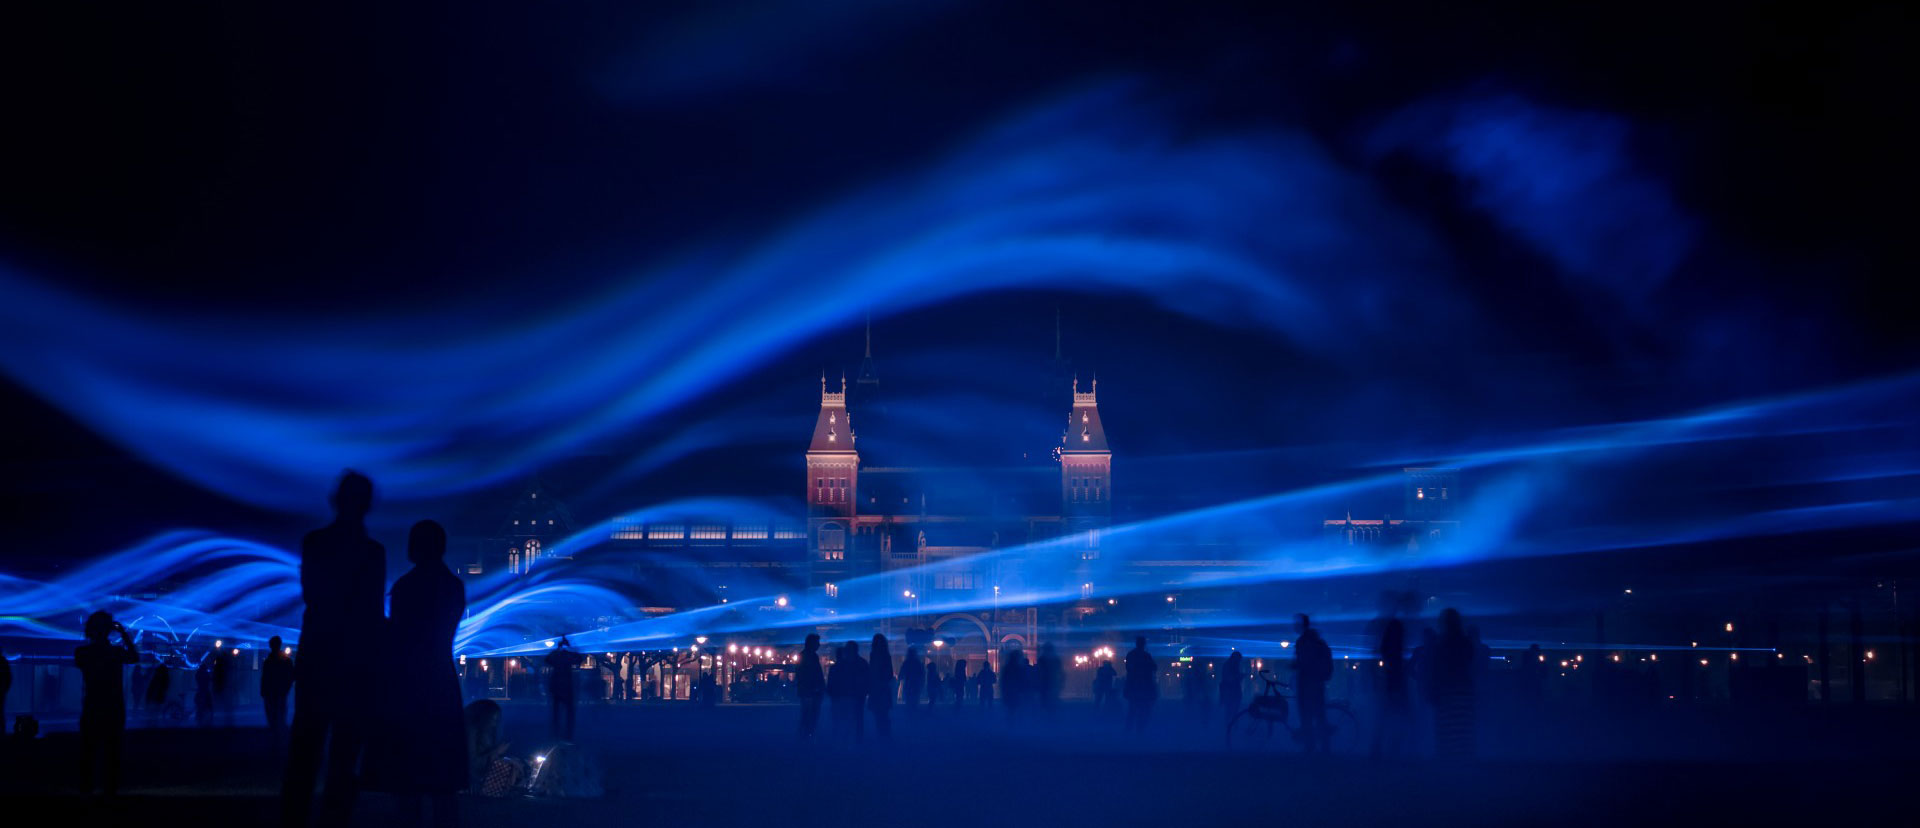 Studio Roosegaarde WATERLICHT will be part of the 2019 Fremantle Biennale